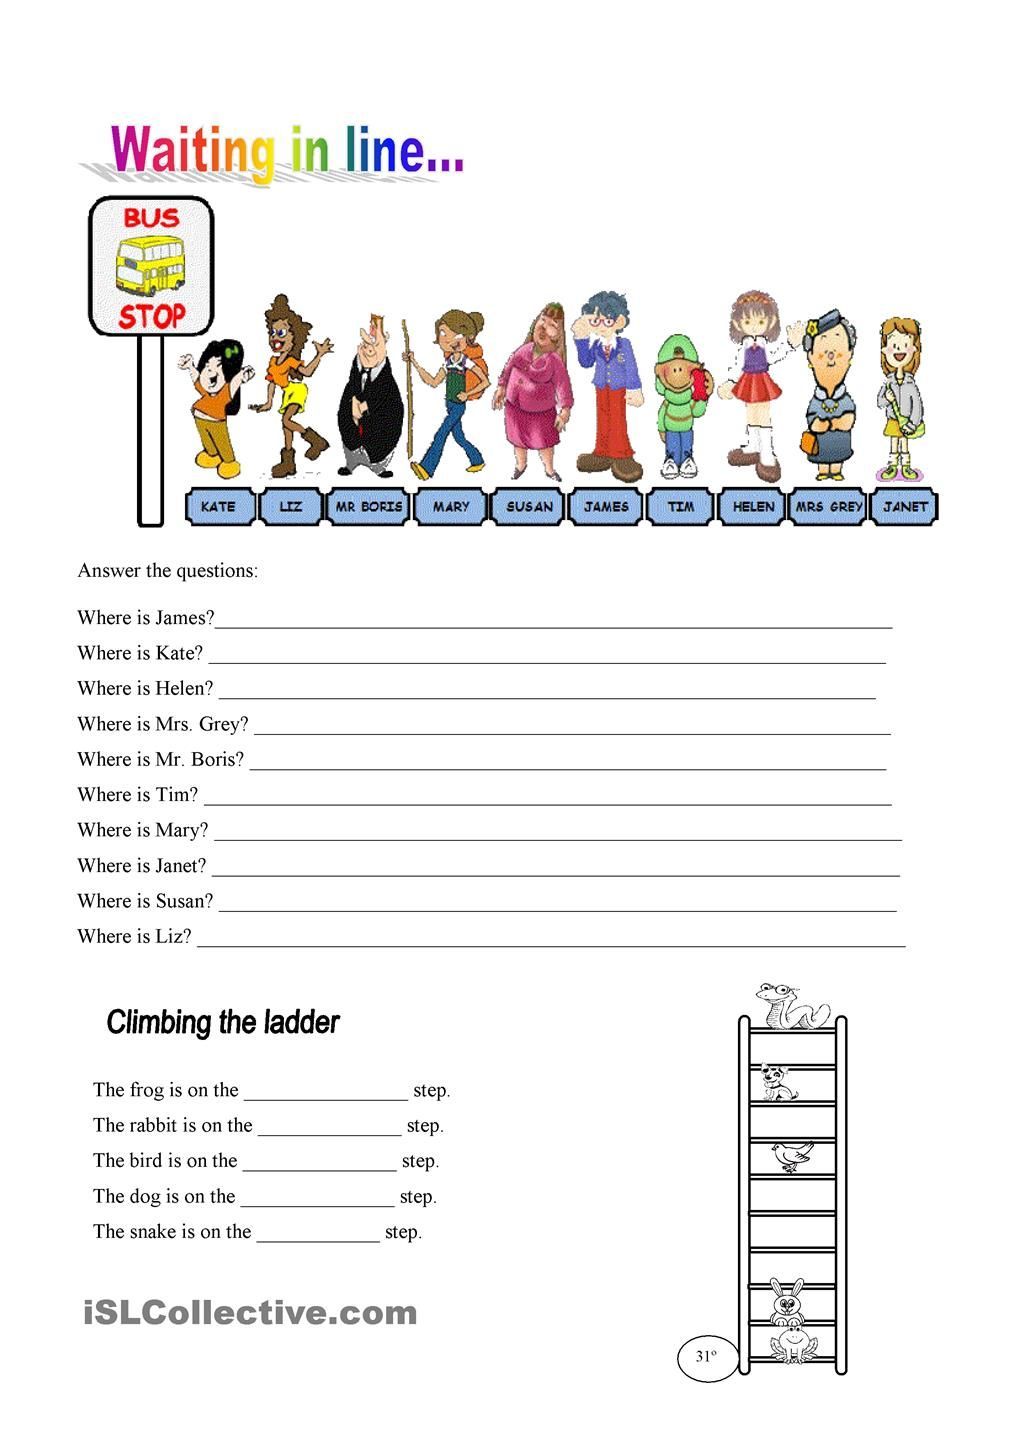 Ordinal numbers exercises | Recipes to Cook | Pinterest